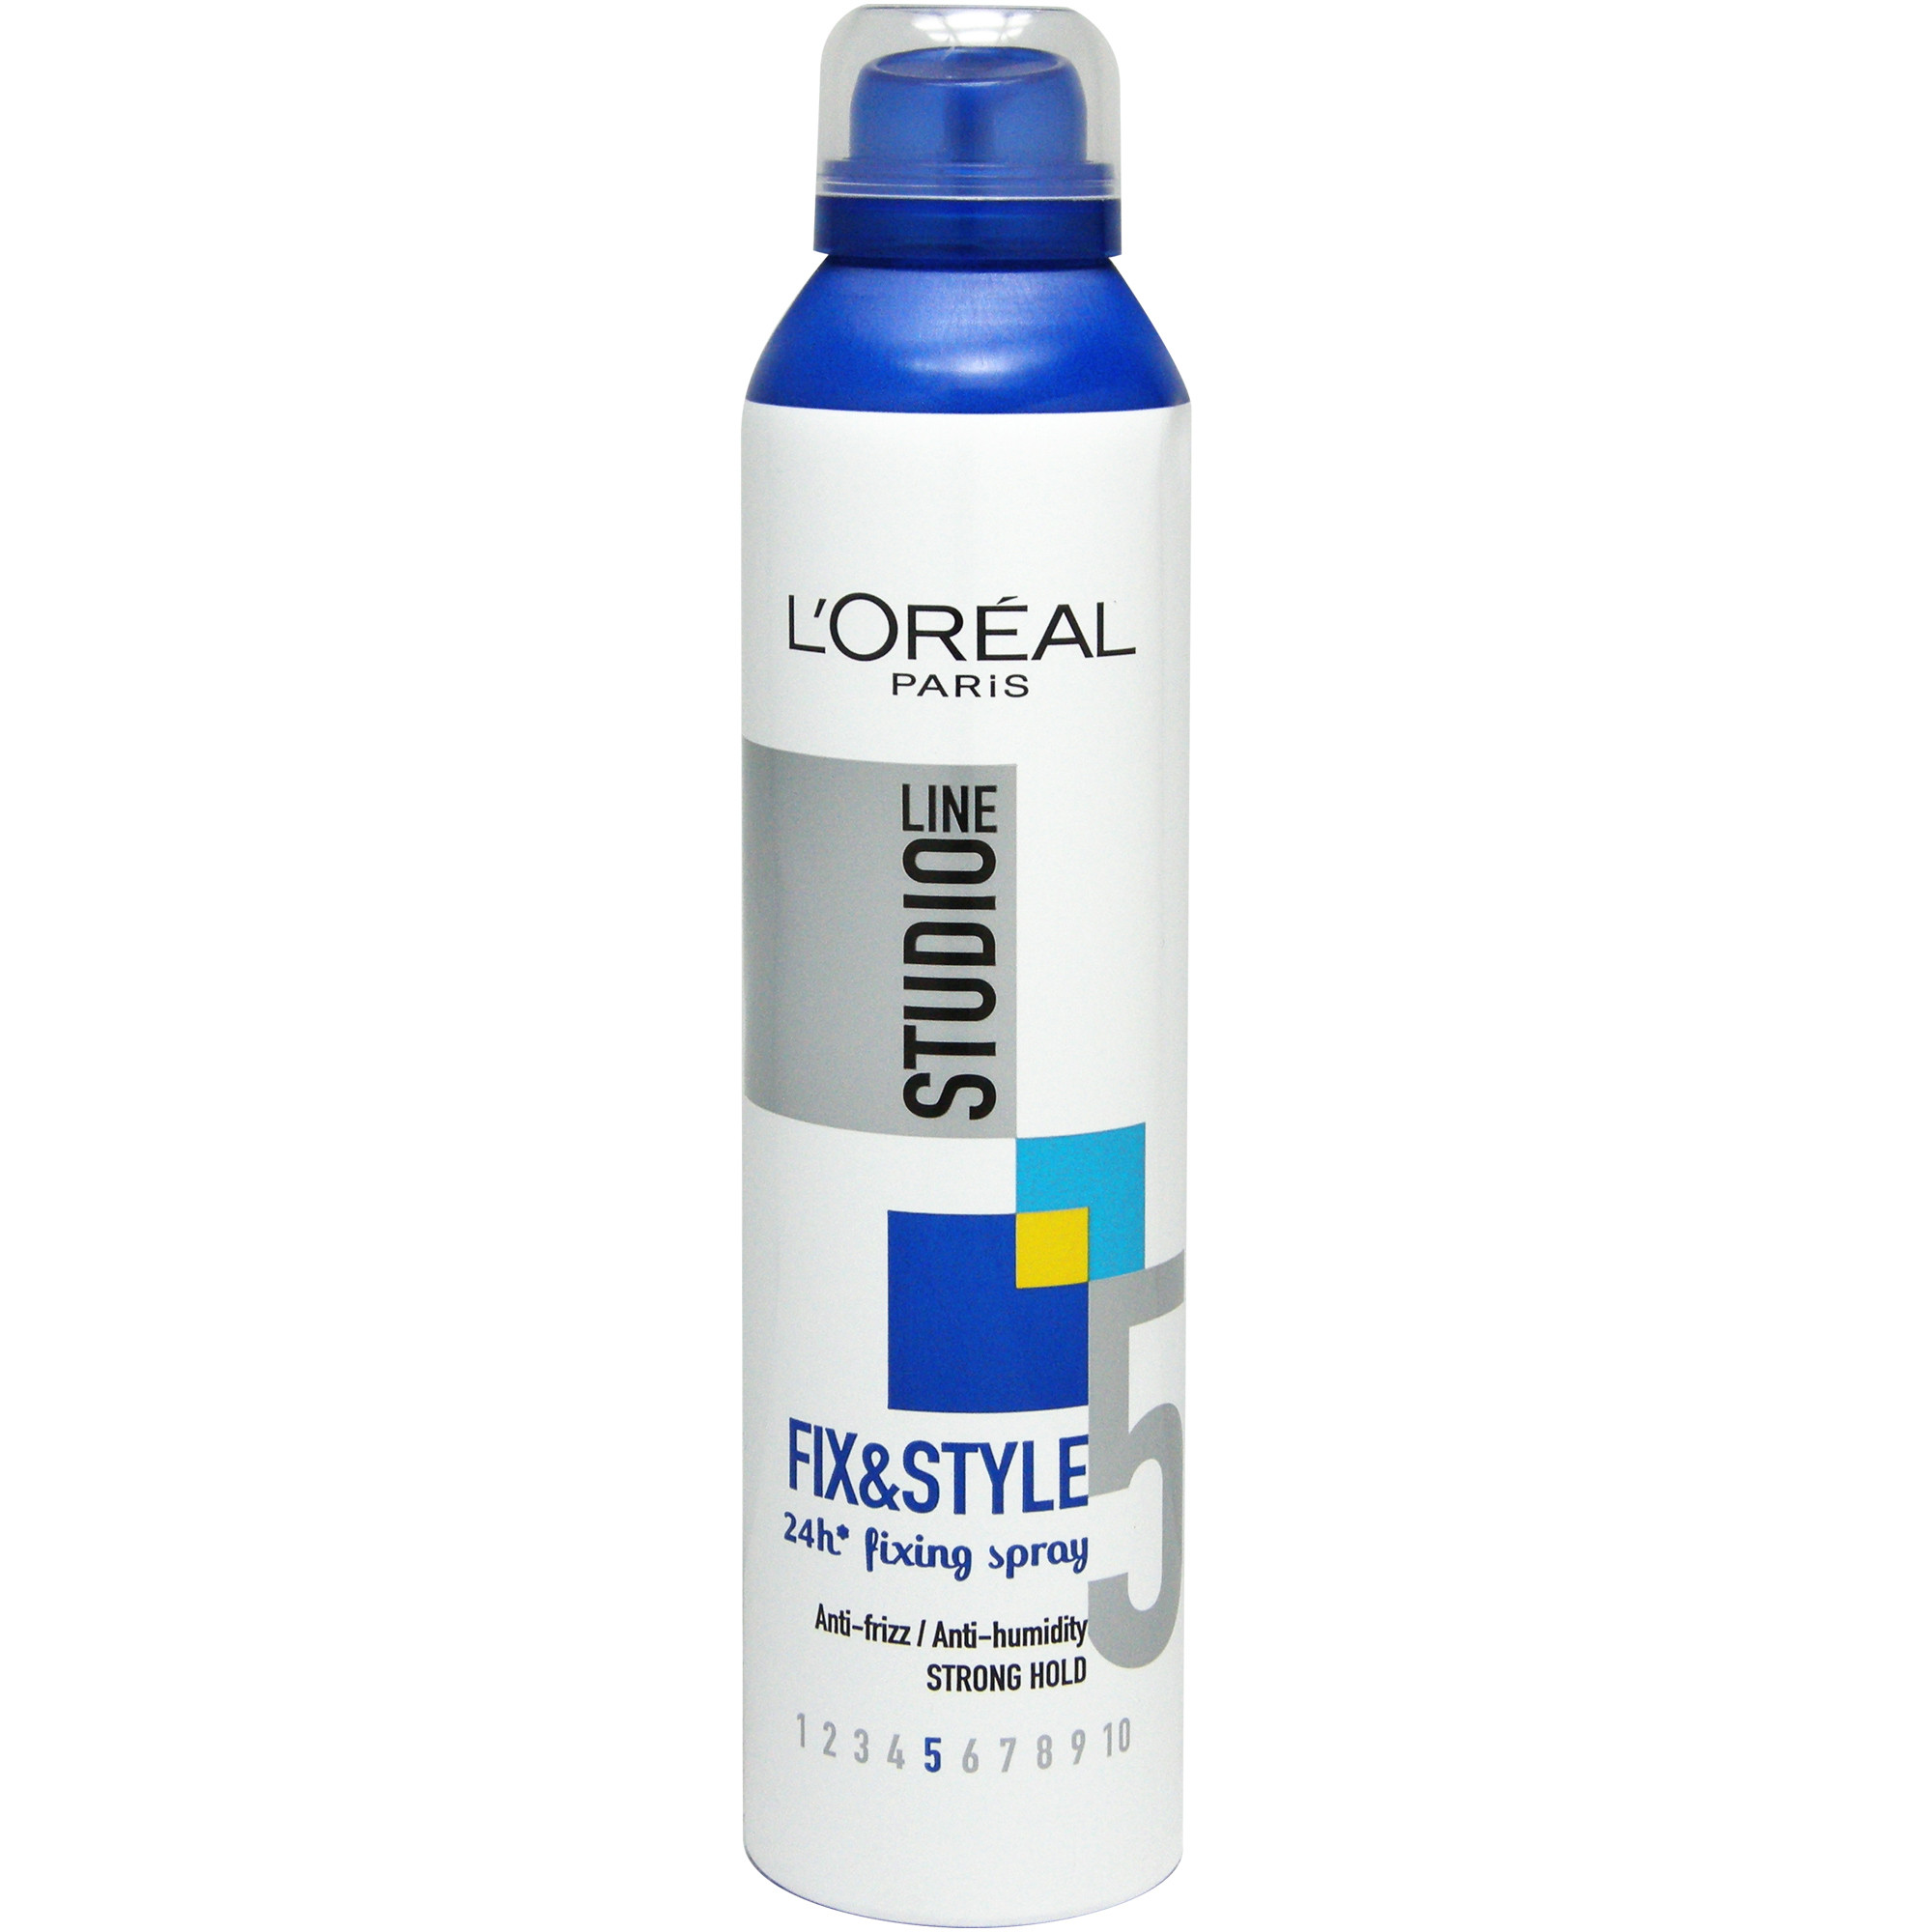 L'Oreal Paris Studio Line Fix & Style 5 Spray, 250ml